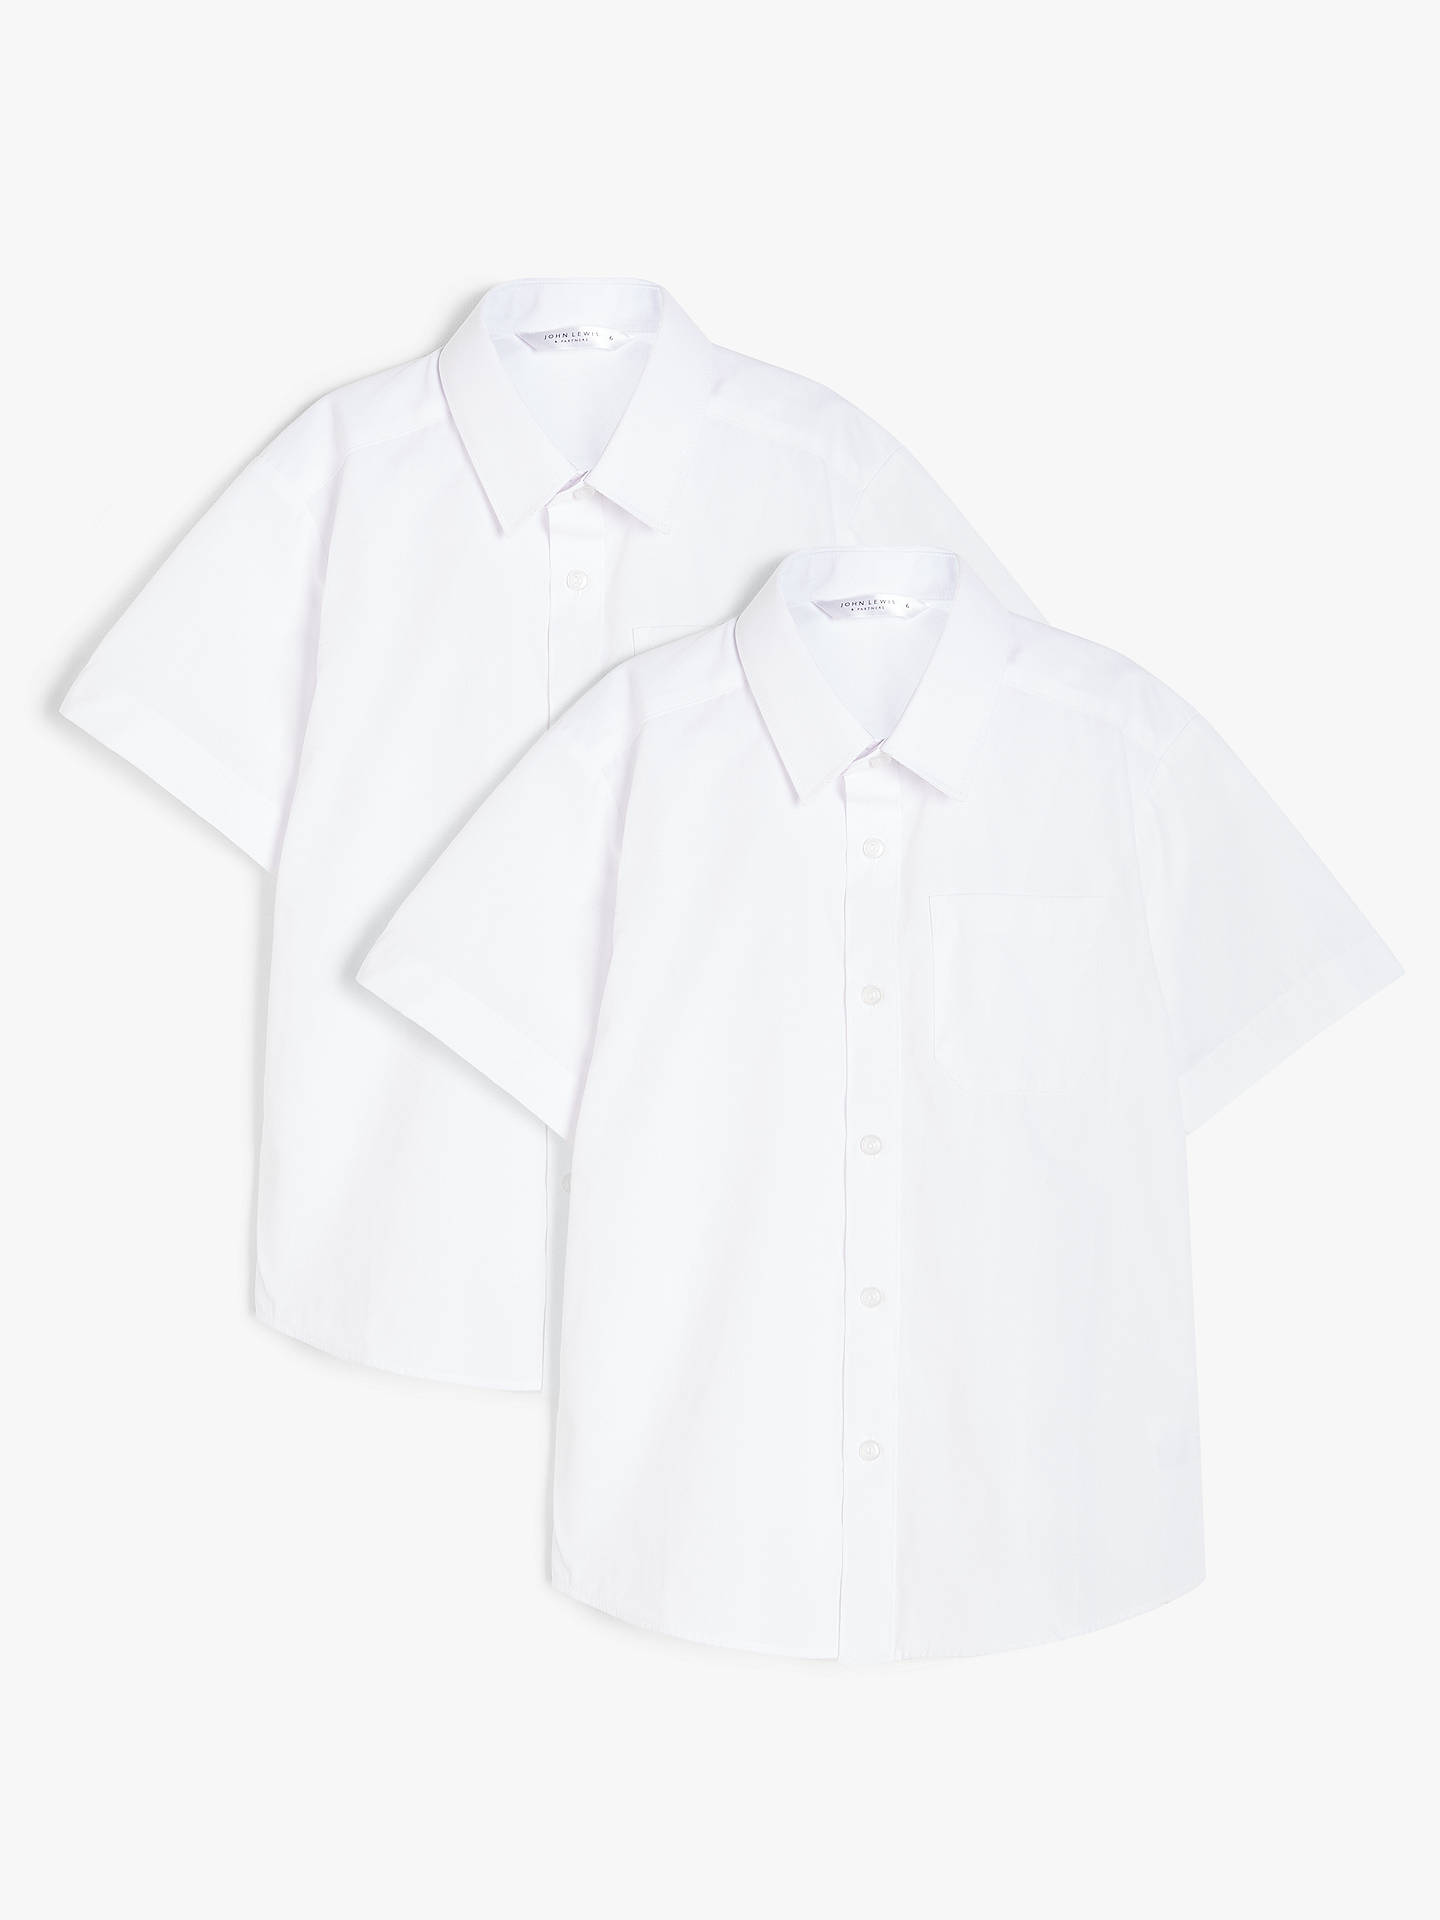 Buy John Lewis & Partners Boys' Short Sleeved Stain Resistant Easy Care Shirt, Pack of 2, White, 4 years Online at johnlewis.com